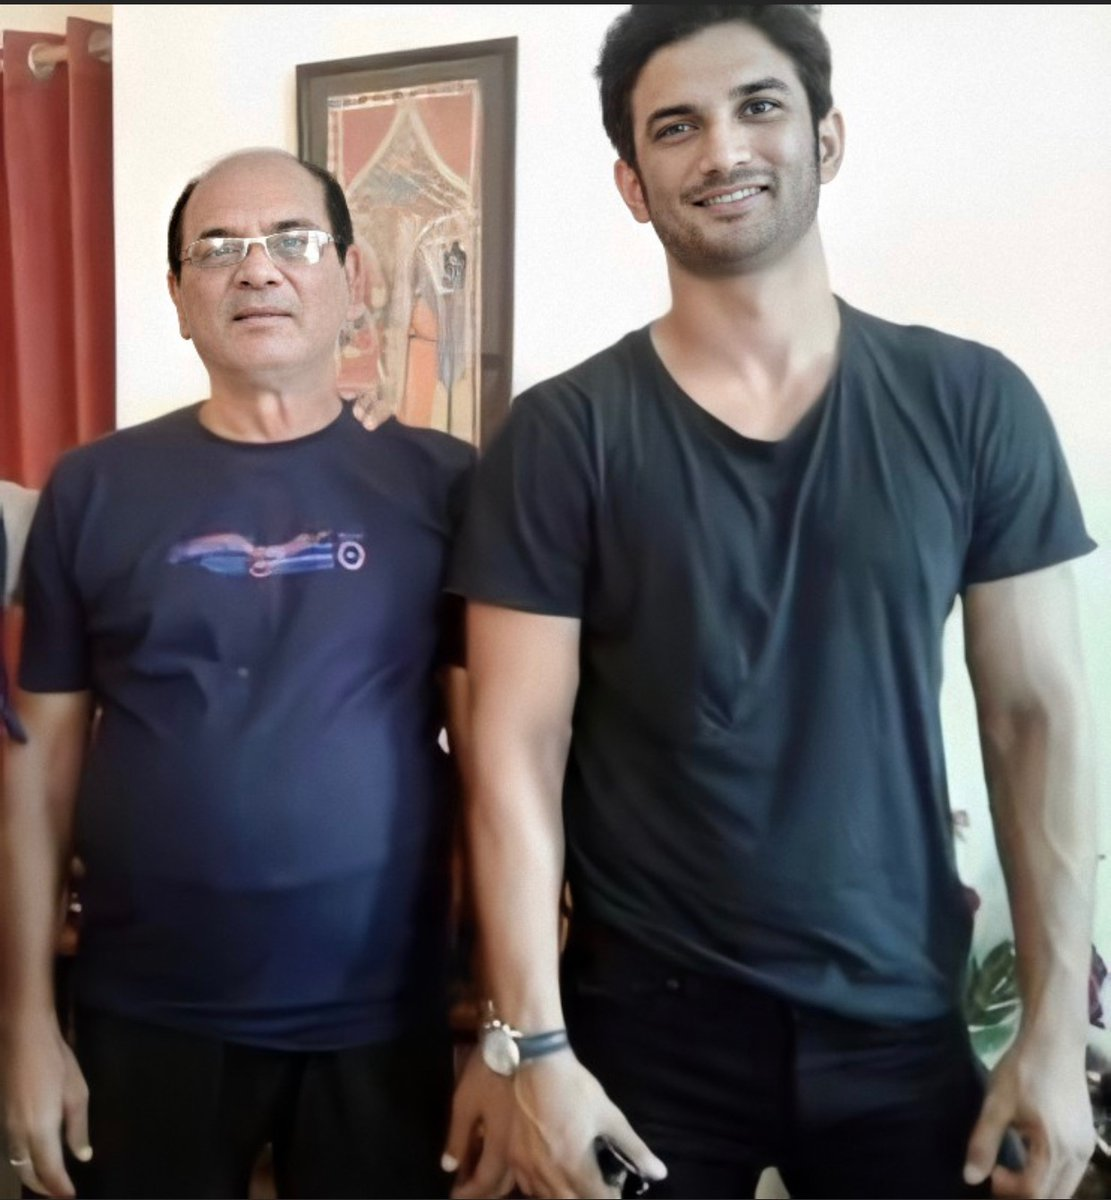 Our Dad... the person from whom we have learnt, how to be a fighter!! How to be eternally positive against all odds. He is our strength, our pride!! #OurDadIsTheBest #Warriors4SSR #JusticeForSushant #JusticeForSushantSinghRajput  #Godiswithus